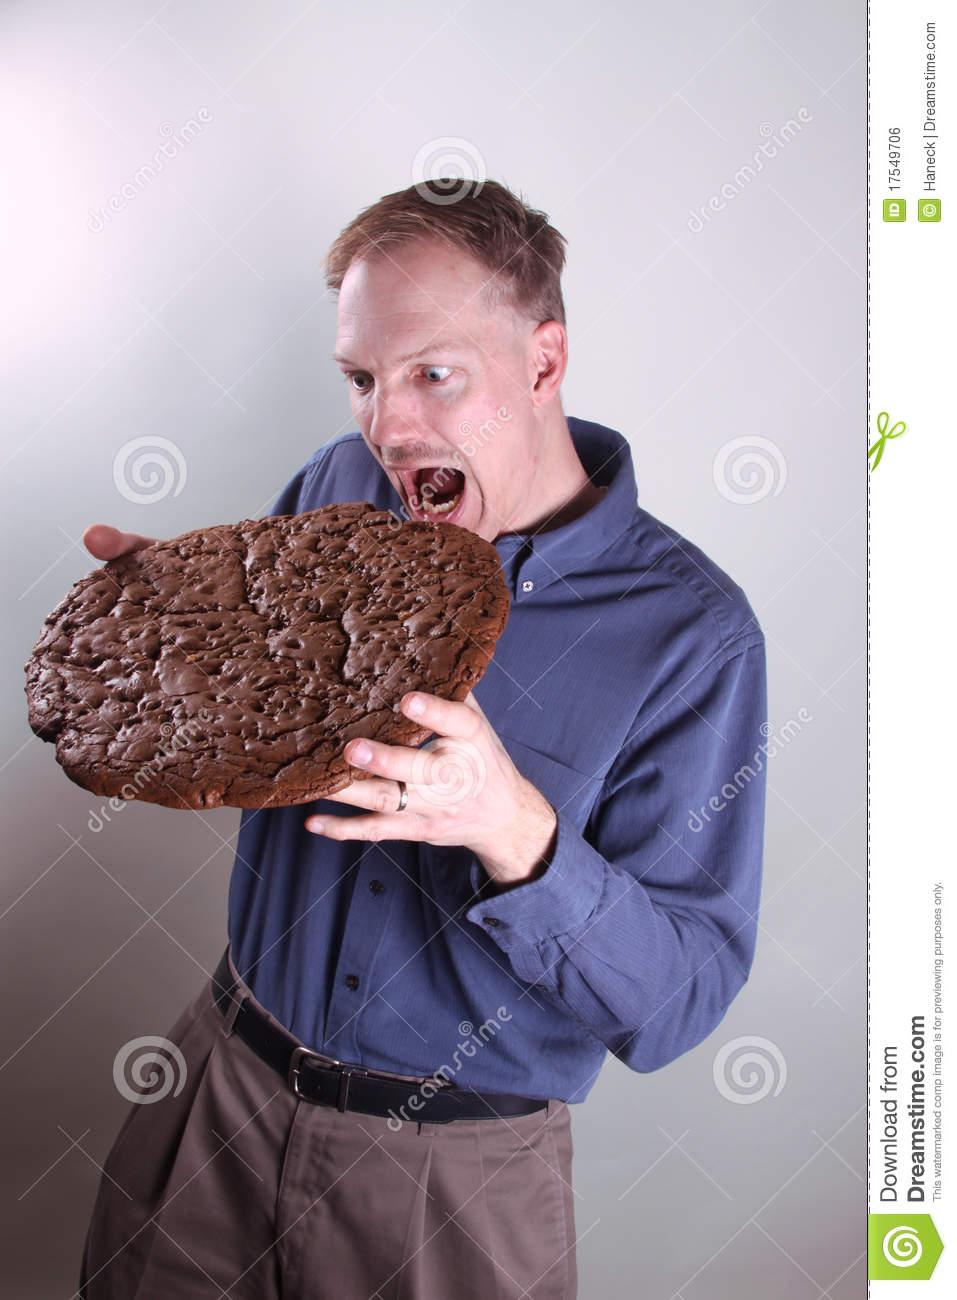 Giant Cookie Royalty Free Stock Image - Image: 17549706